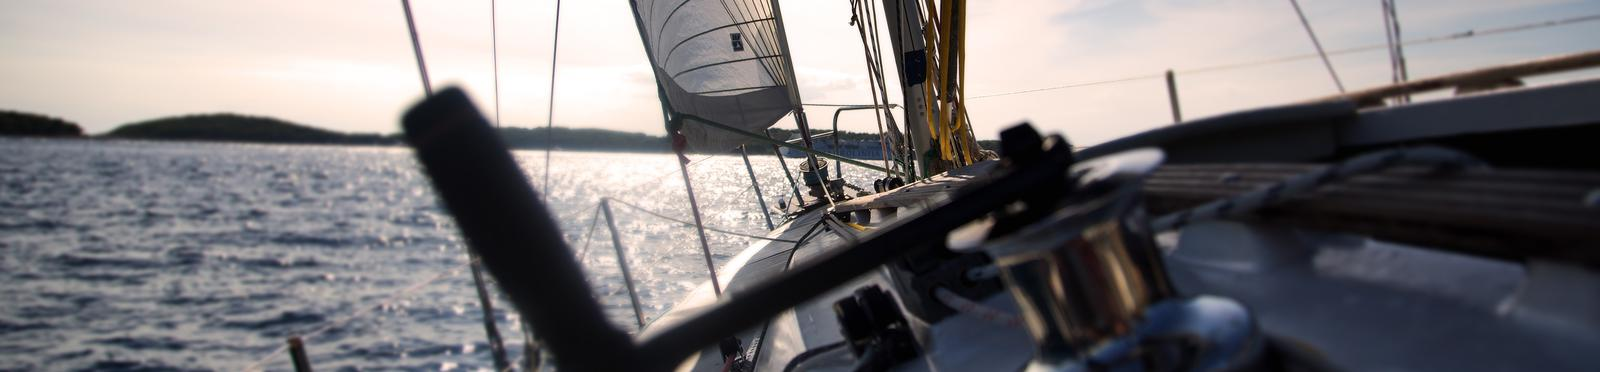 The view of a sailer from his perspective, sailing the waters.